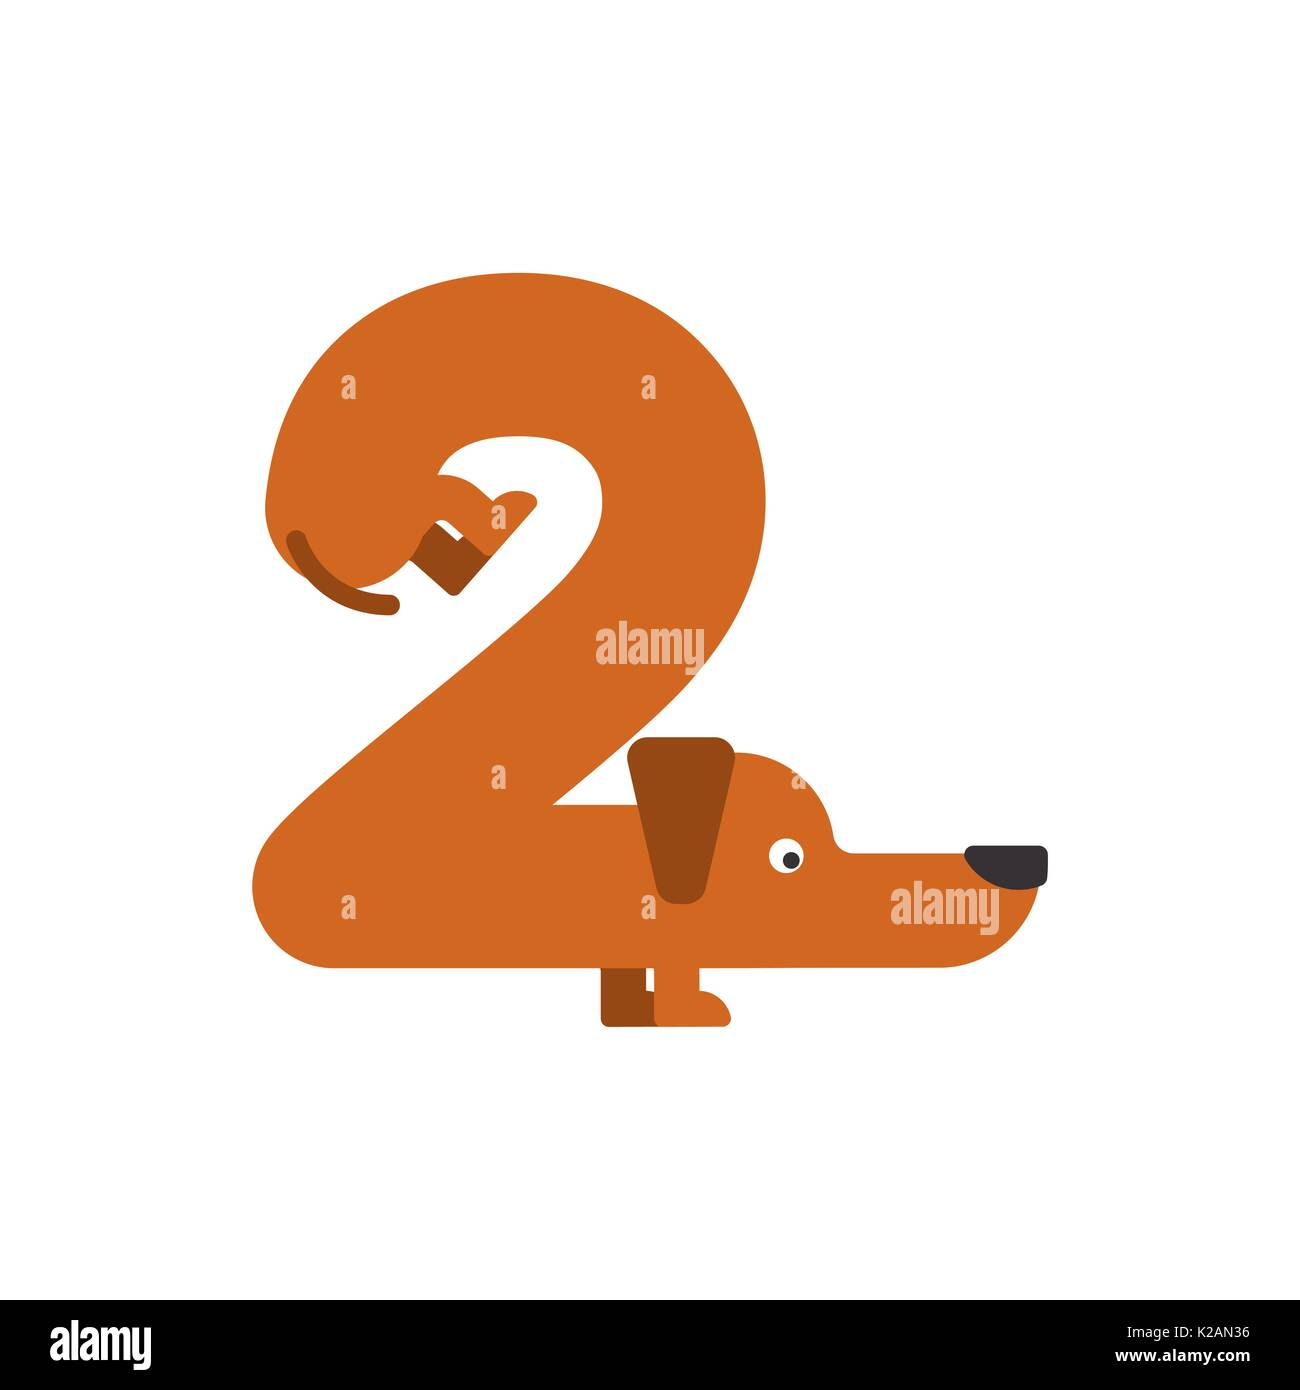 Figure 2 Dog Dachshund Font Two Home Pet Abc Symbol Home Animal